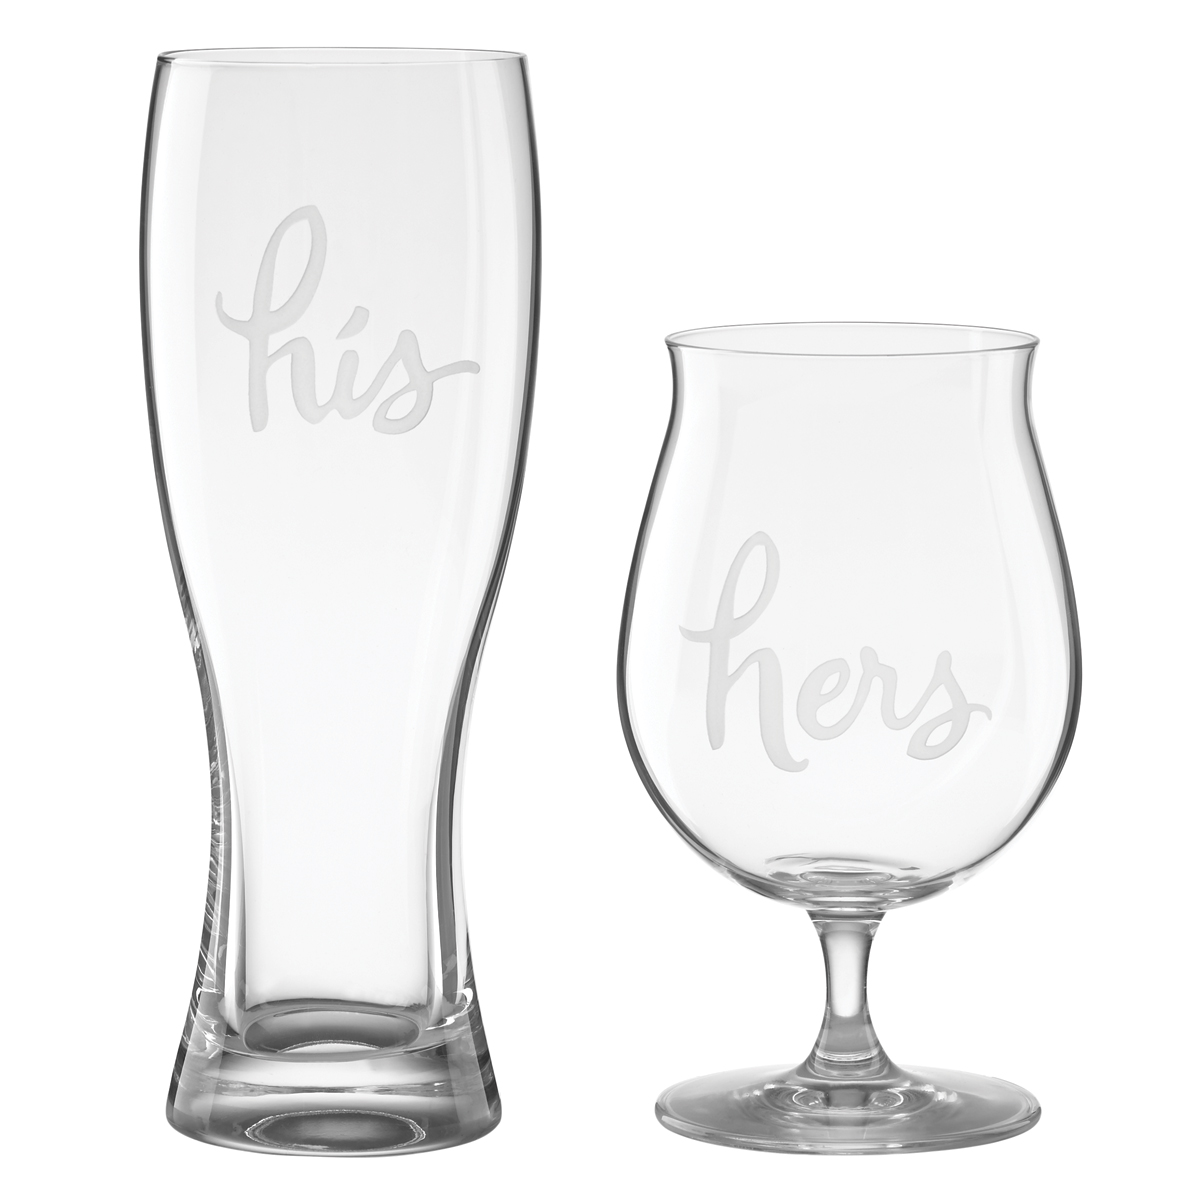 Kate Spade New York, Lenox Two of a Kind His and Hers Beer Glasses